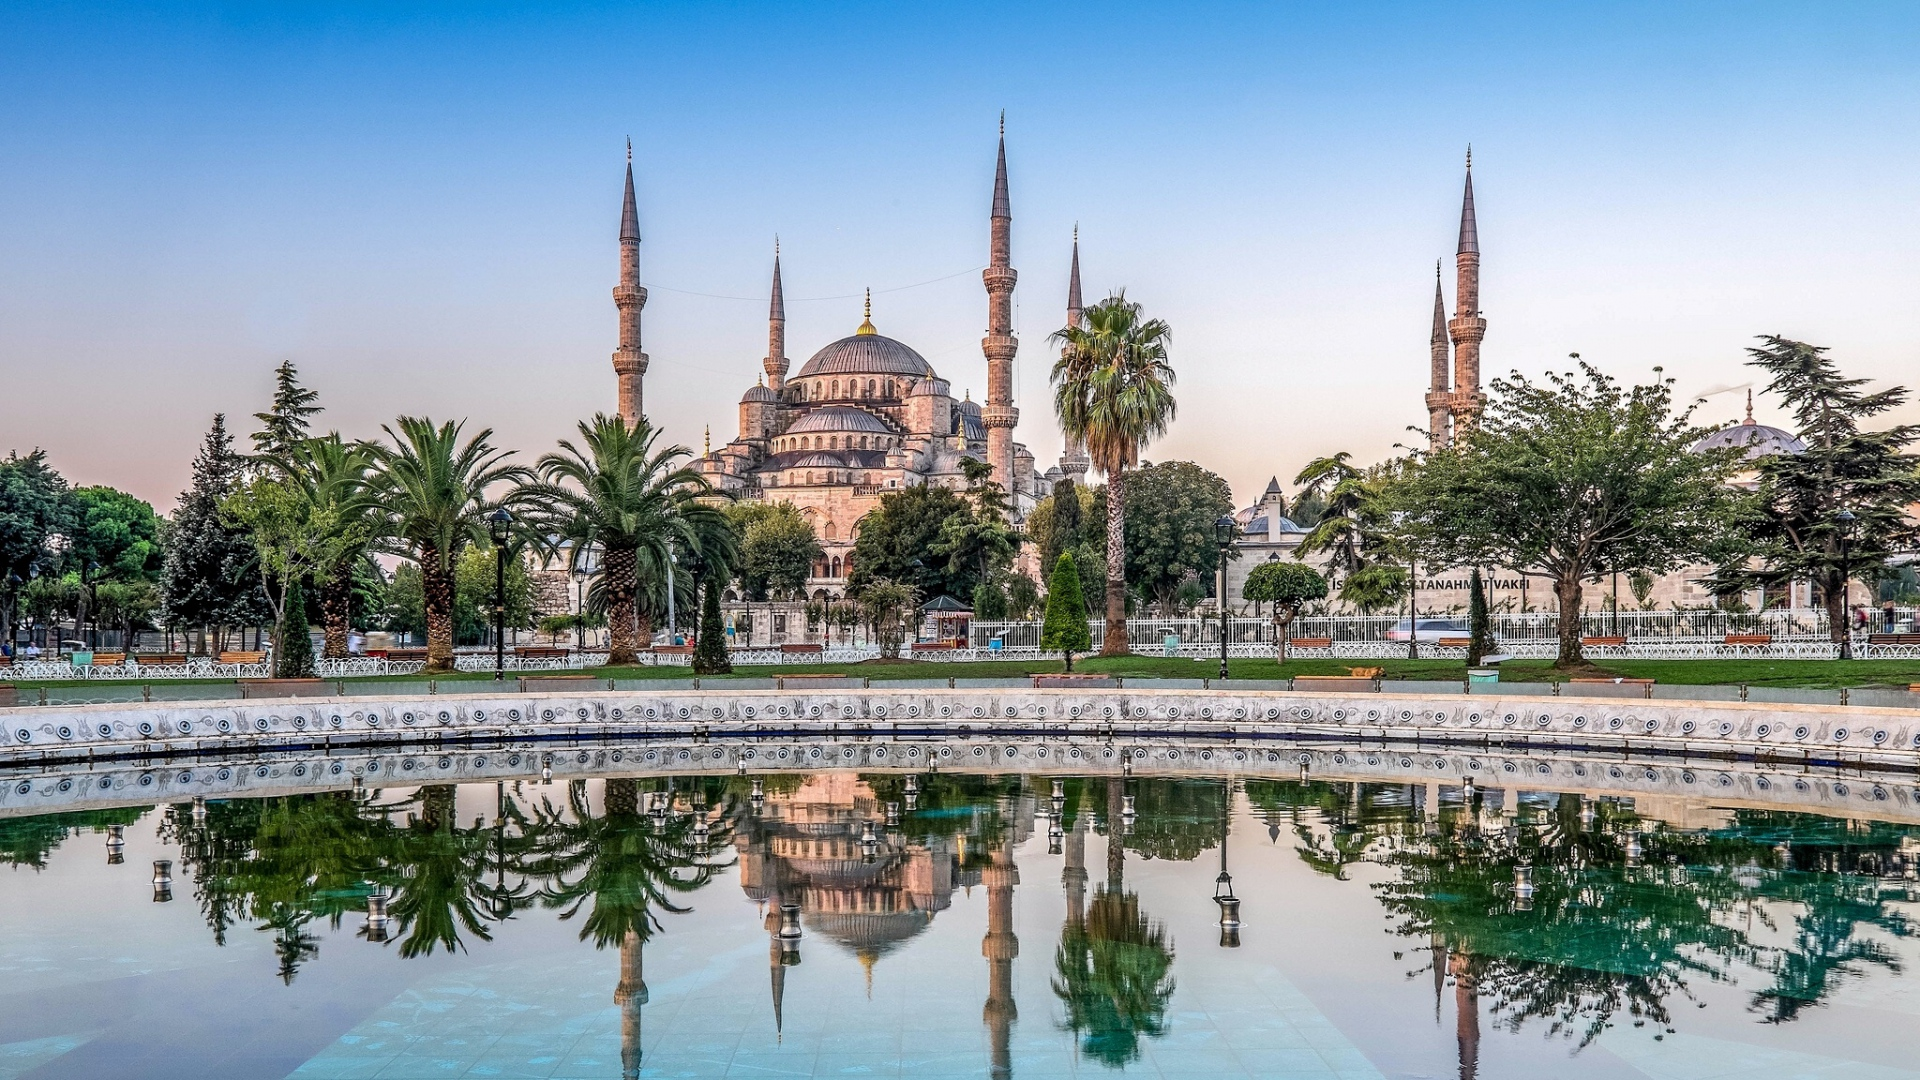 blue_mosque_sultan_ahmet_mosque_istanbul_turkey_97393_1920x1080